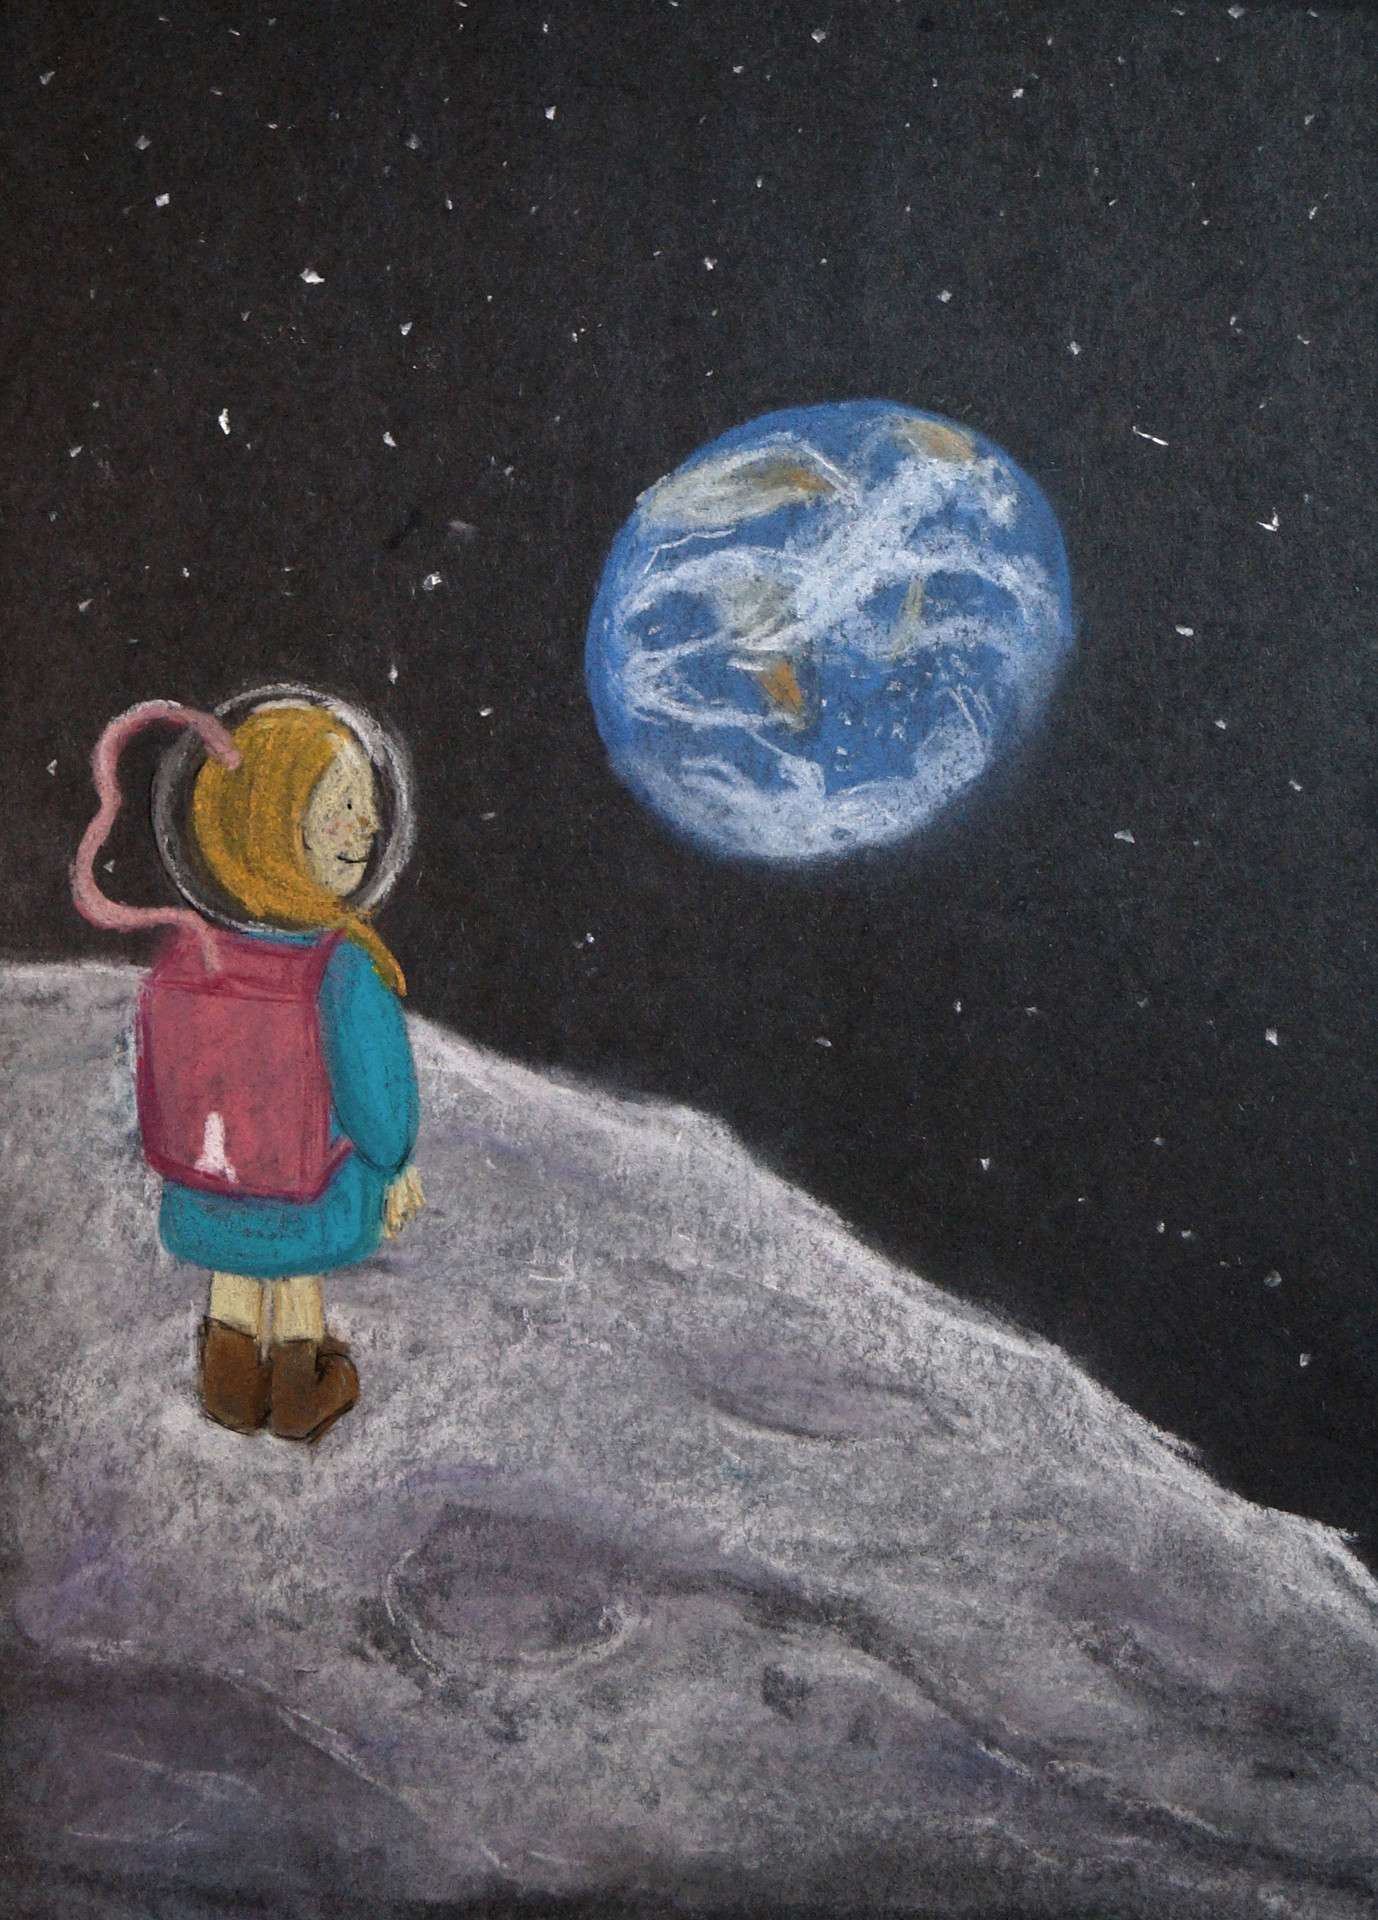 Artemis dreams that one day soon, she will have made it to the moon.